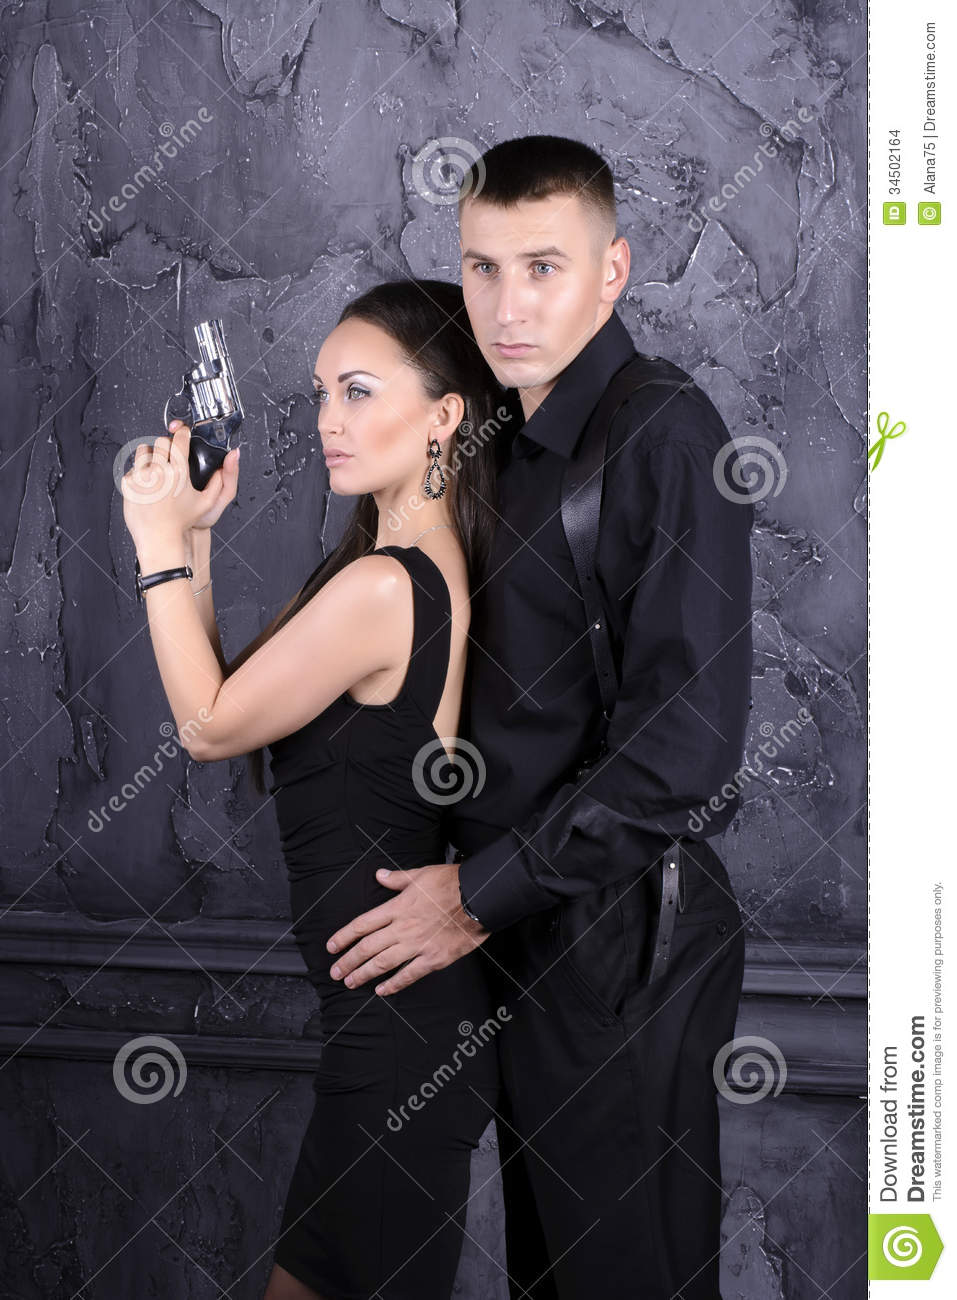 Girl Guy Makeup Youtube: Guy And A Girl With A Gun Stock Images